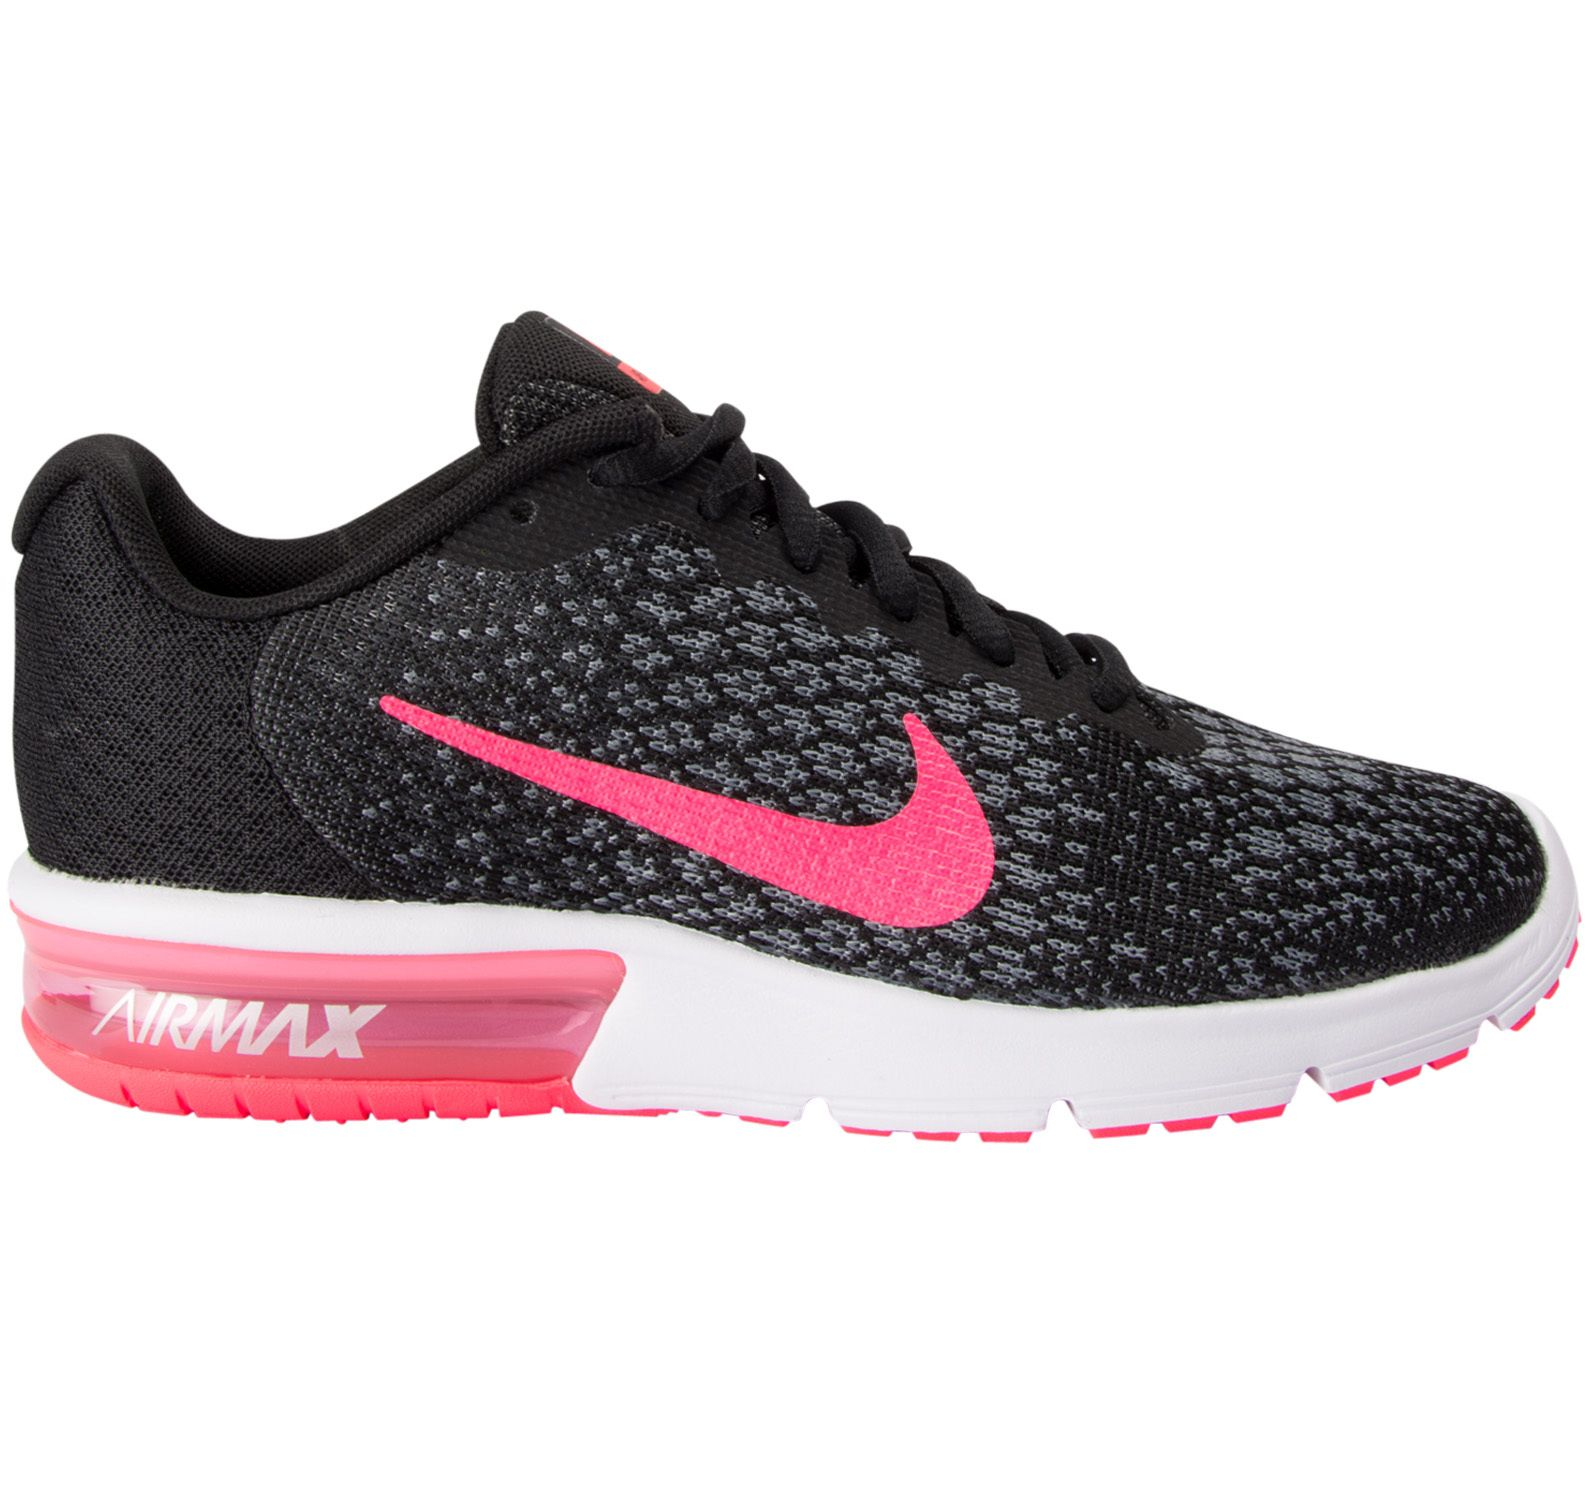 Wmns Nike Air Max Sequent 2, Black/Racer Pink-Anthracite-Co, 44,5